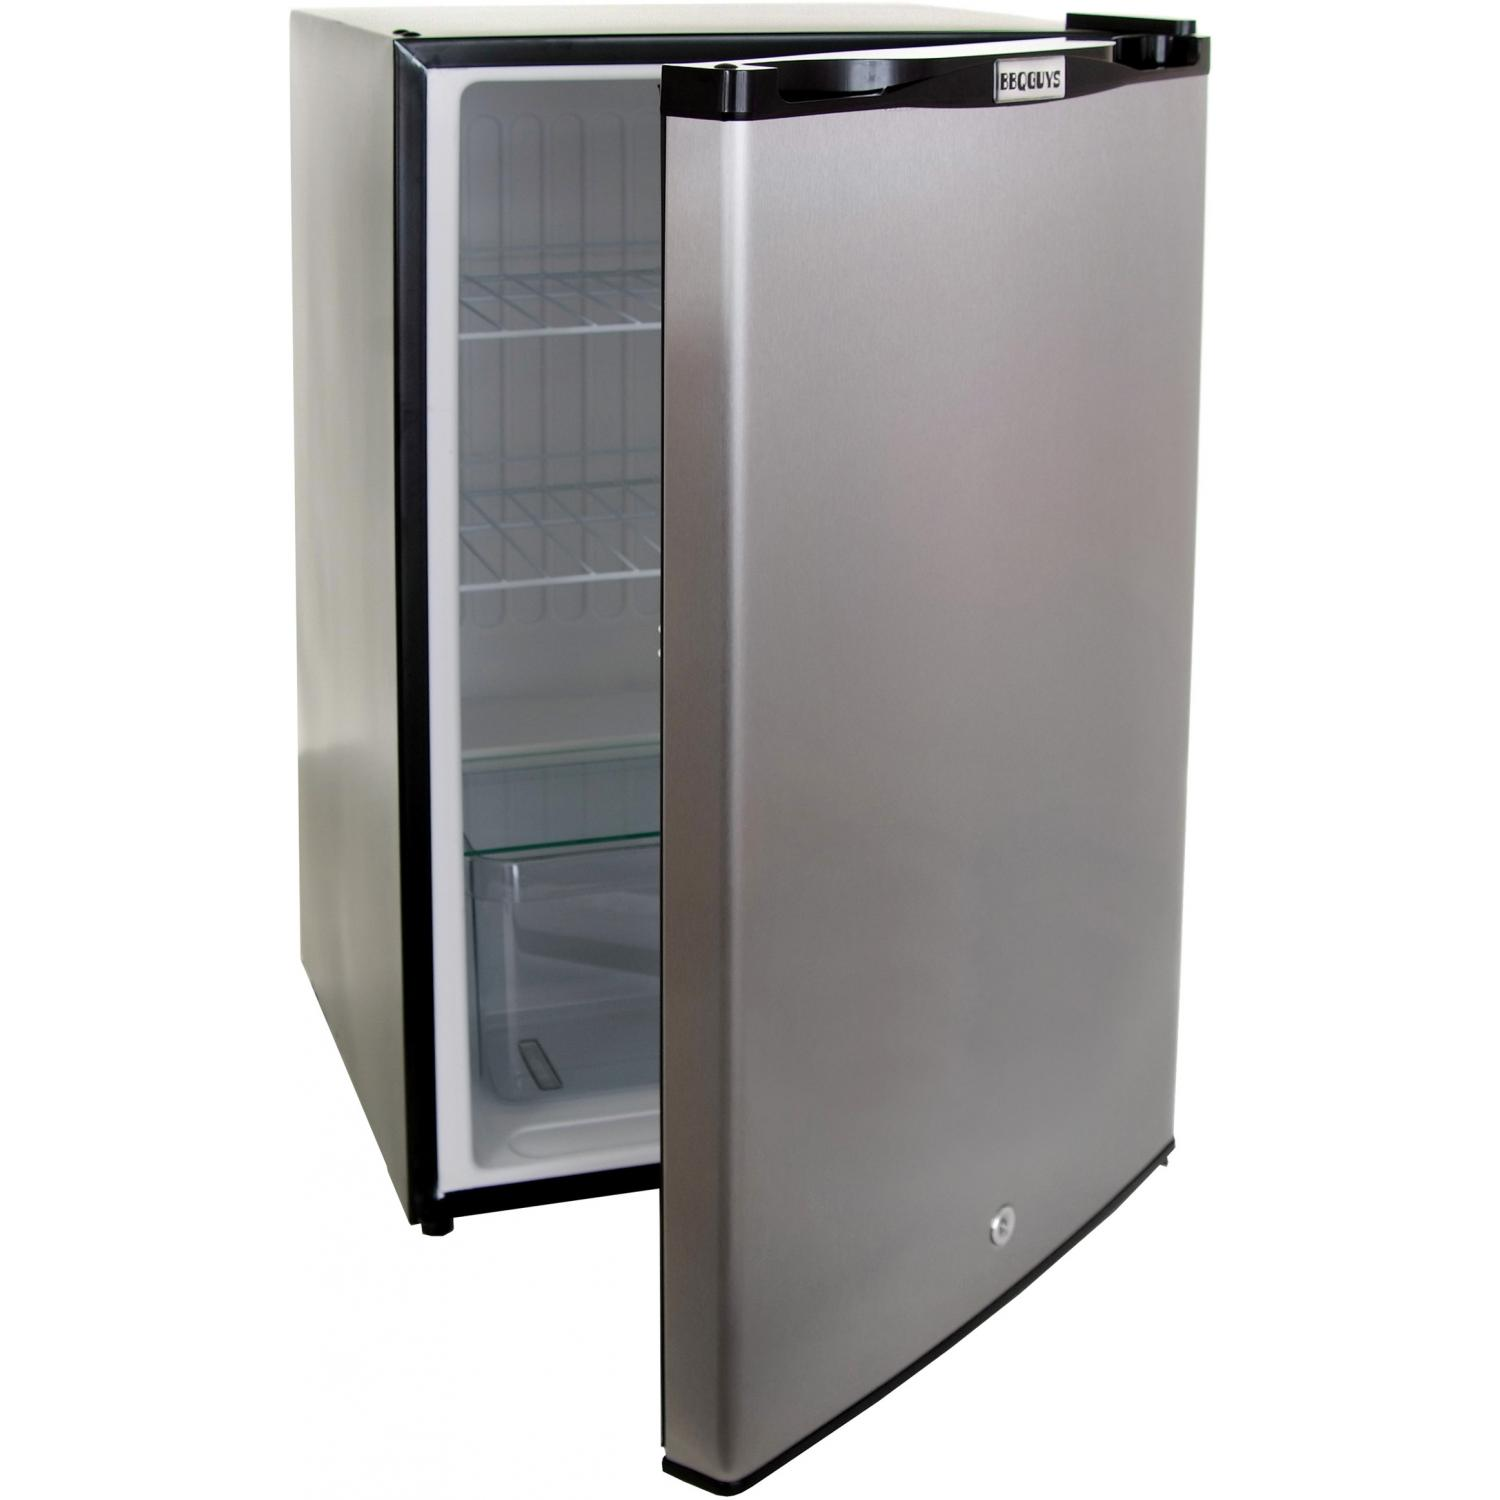 BBQ Guys 4.1 Cu. Ft. Capacity Stainless Steel Compact Refrigerator With Locking Door